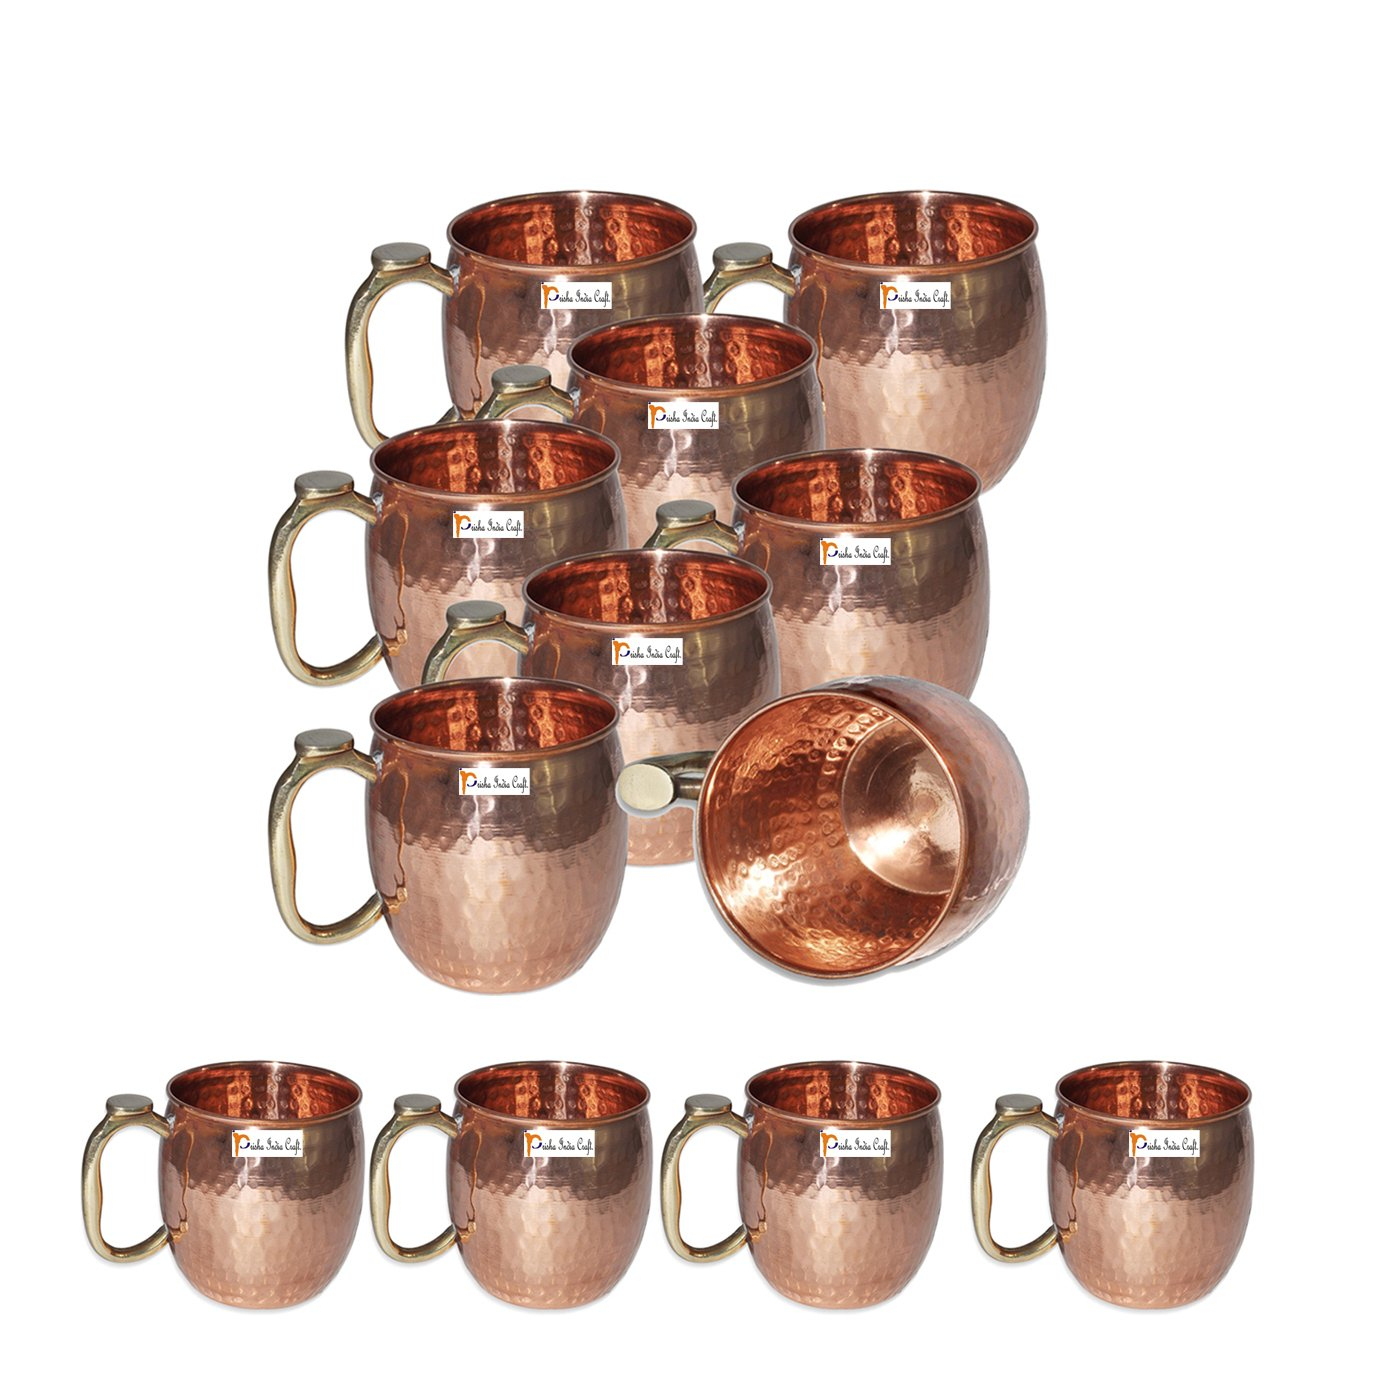 Set of 12 - Prisha India Craft ® Copper Mug for Moscow Mules 550 ML / 18 oz Pure Copper Mug Mule Cup, Moscow Mule Cocktail Cup, Copper Mugs, Cocktail Mugs